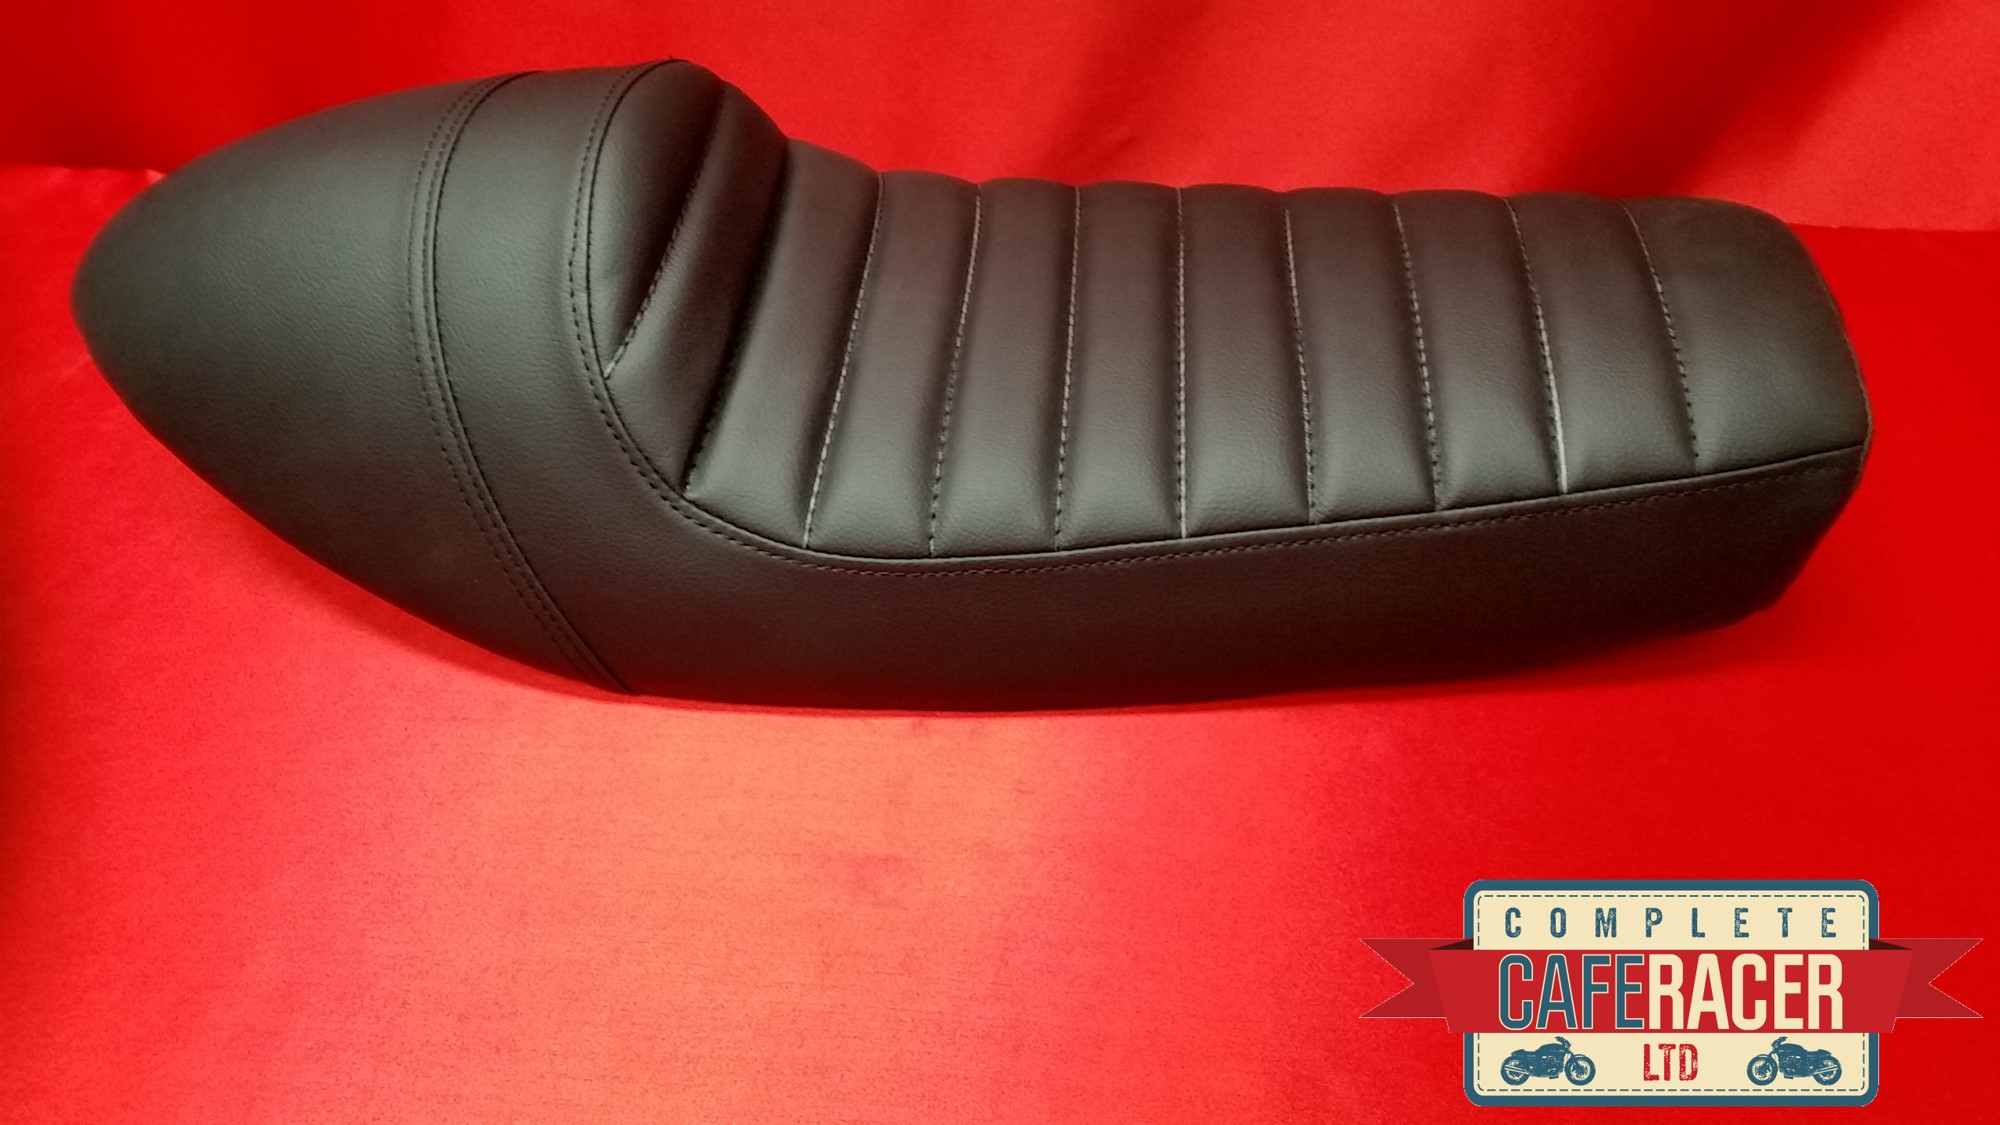 (LS1) CAFE RACER SEAT FINISHED IN BLACK LEATHERETTE SEAT PAD AND HUMP